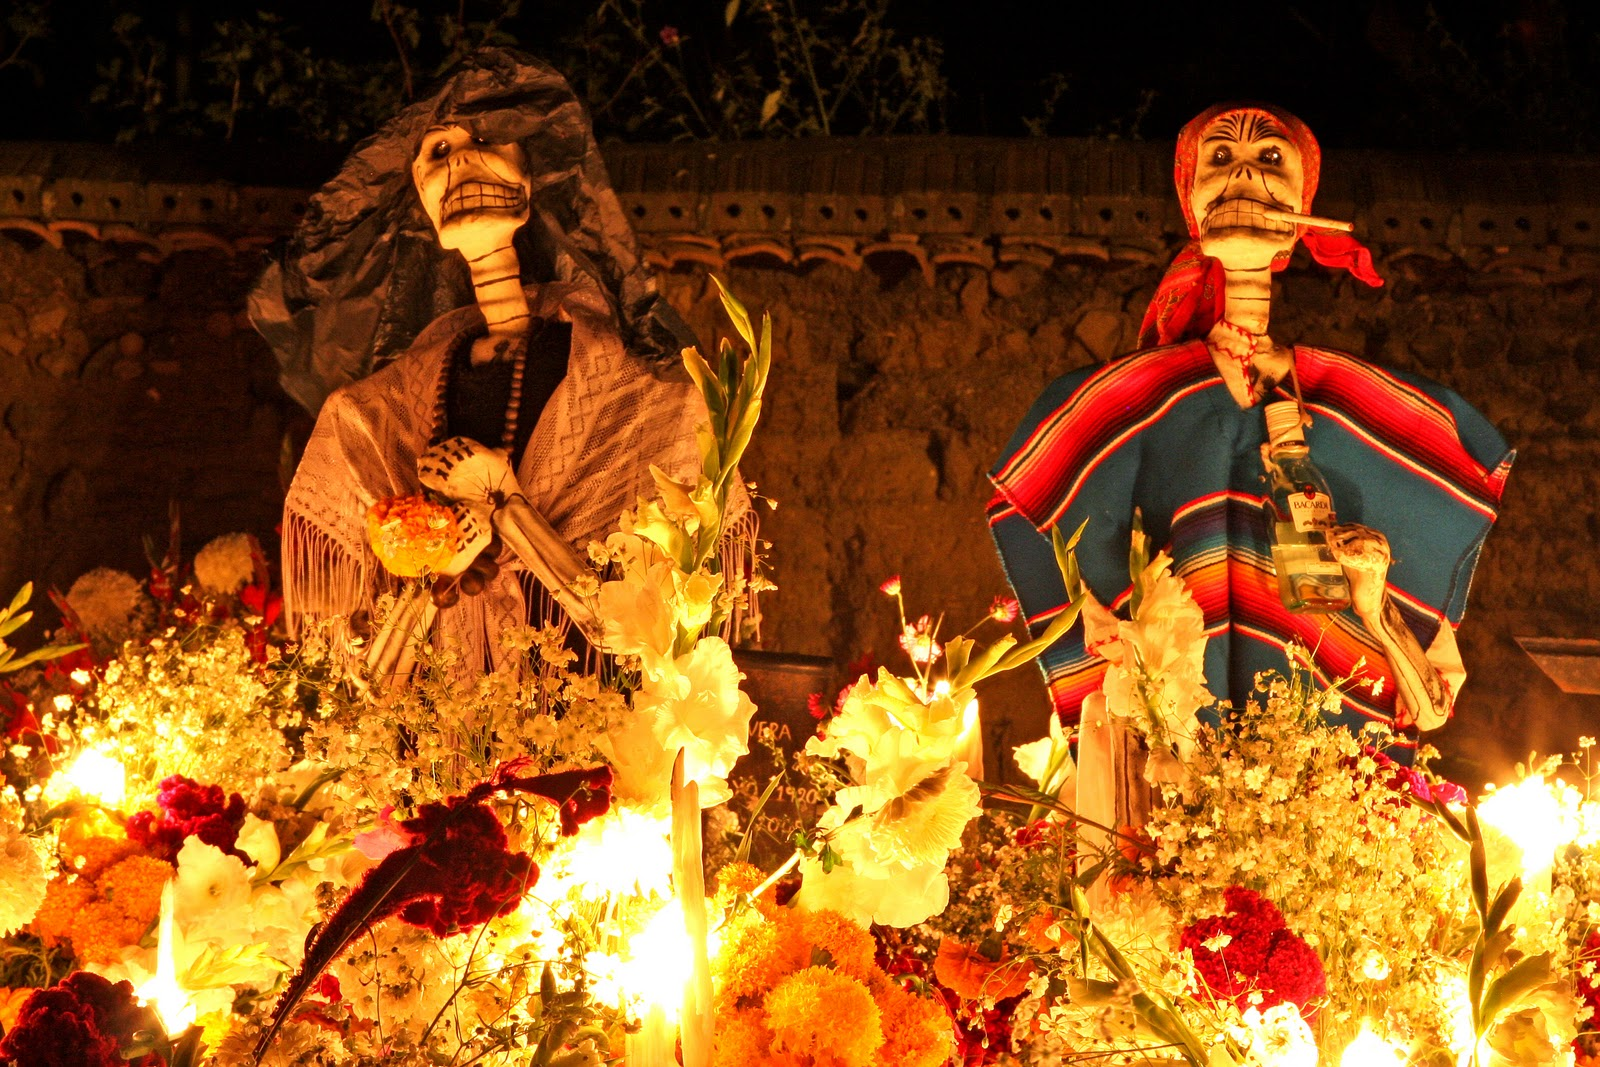 Mexico Halloween Special- The Day of the Dead